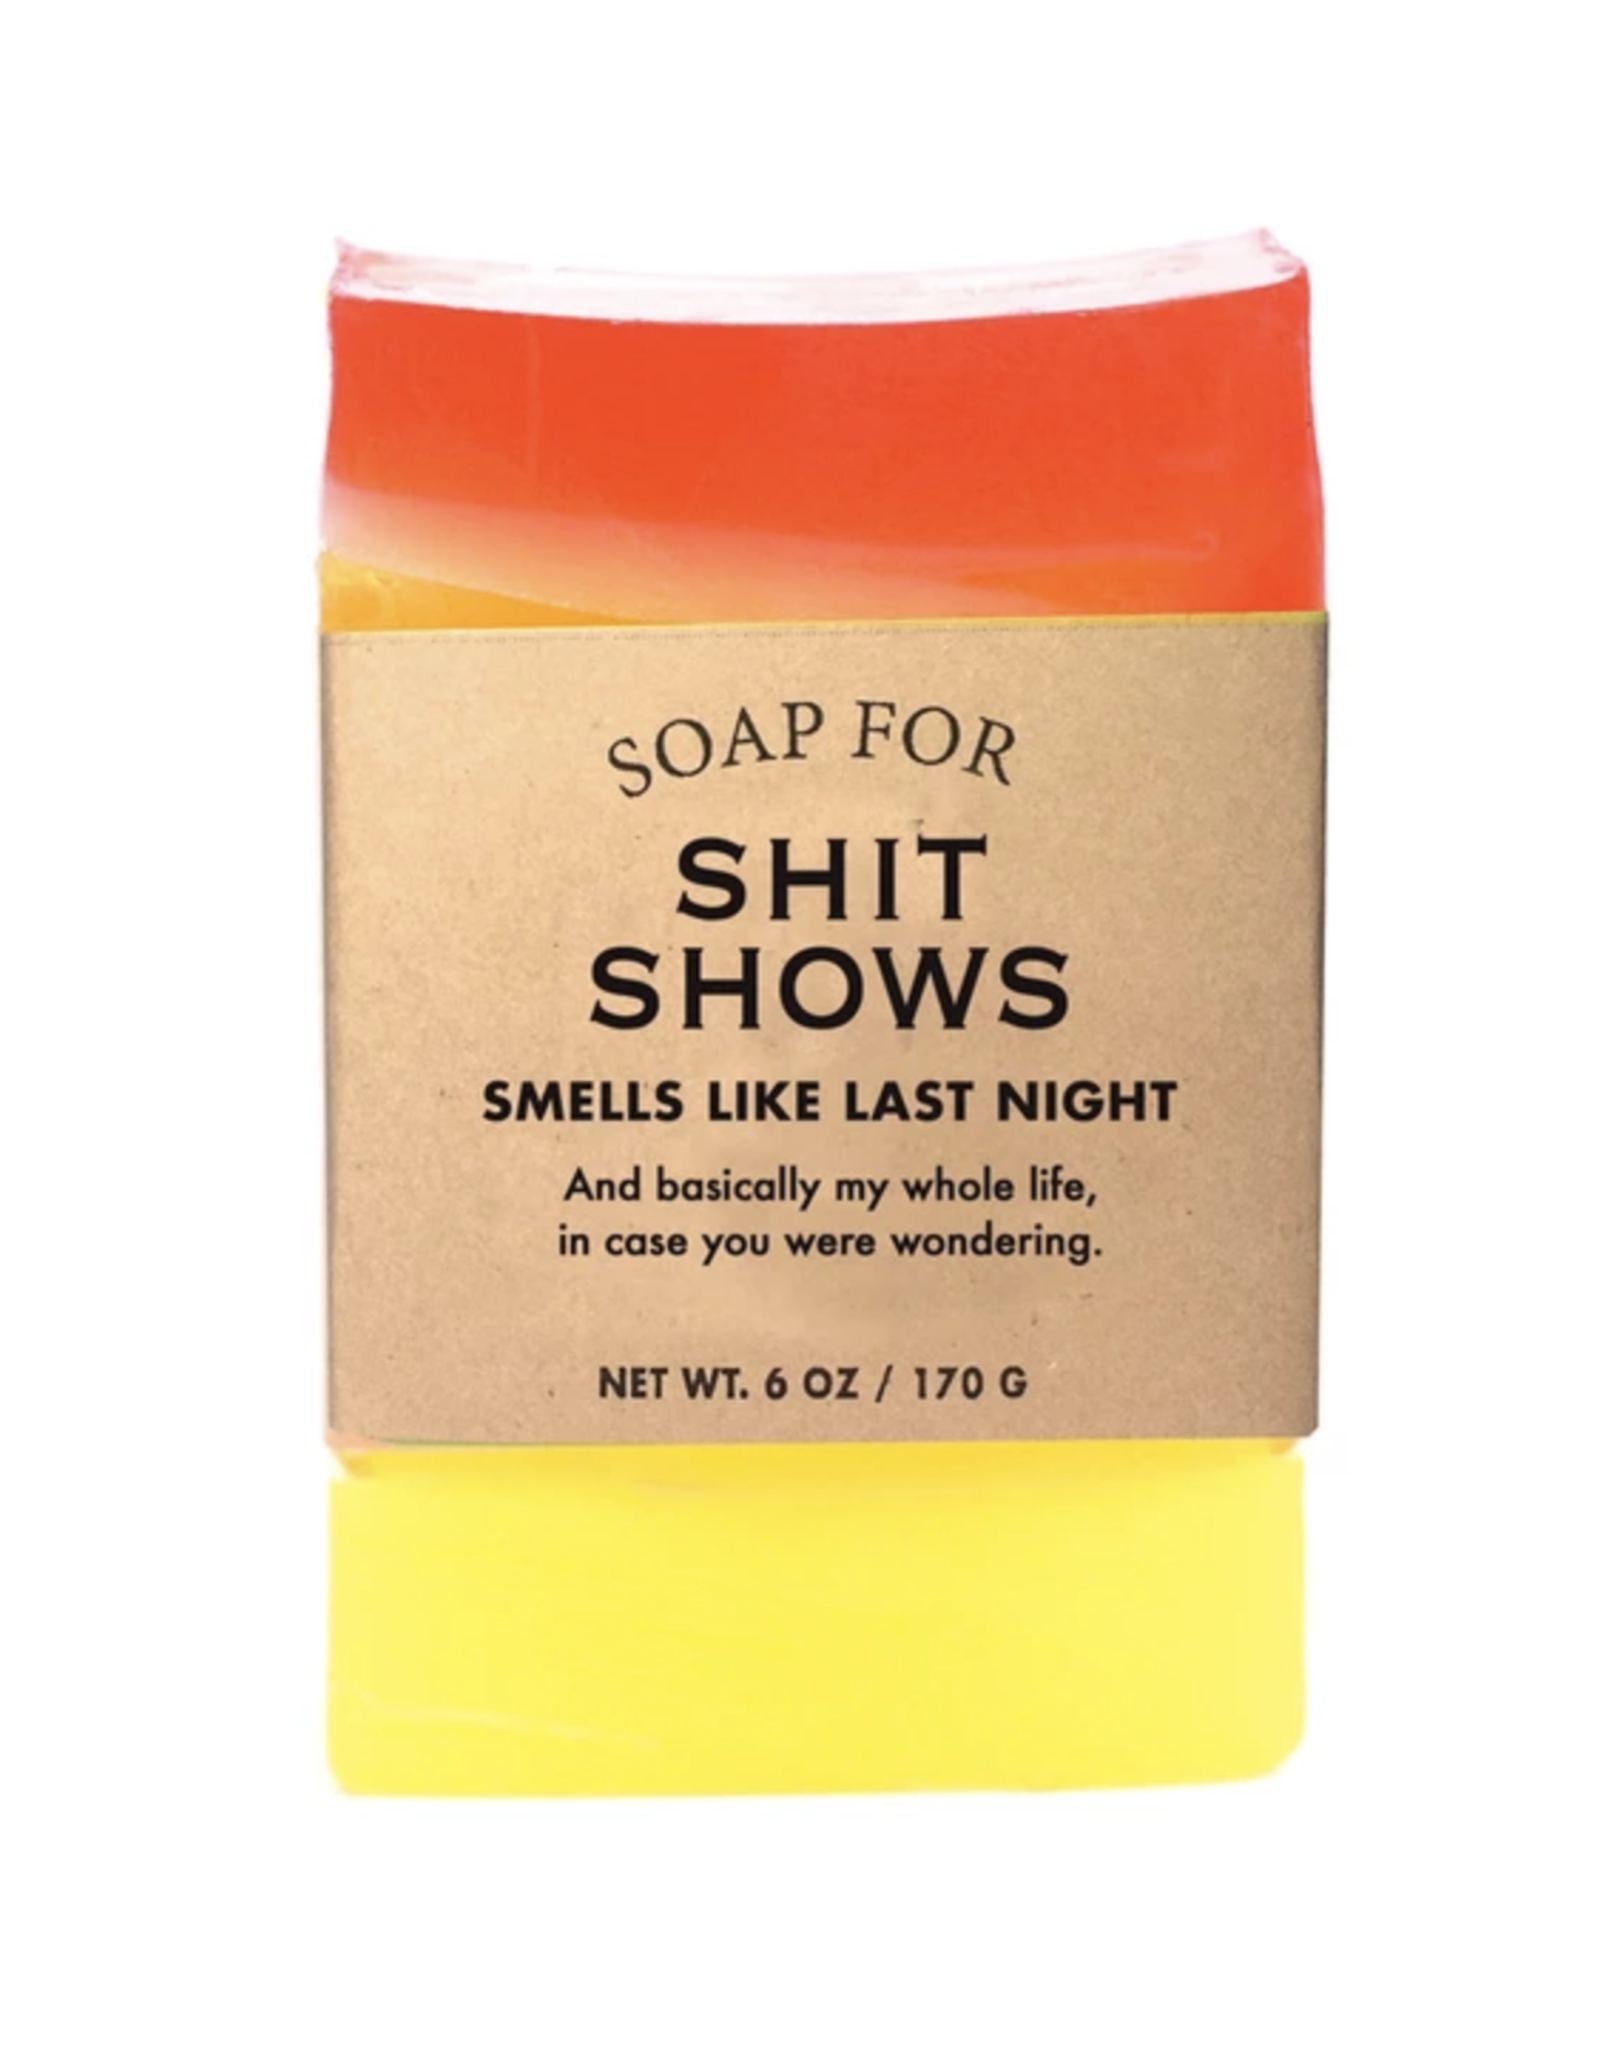 A Soap for Shit Shows